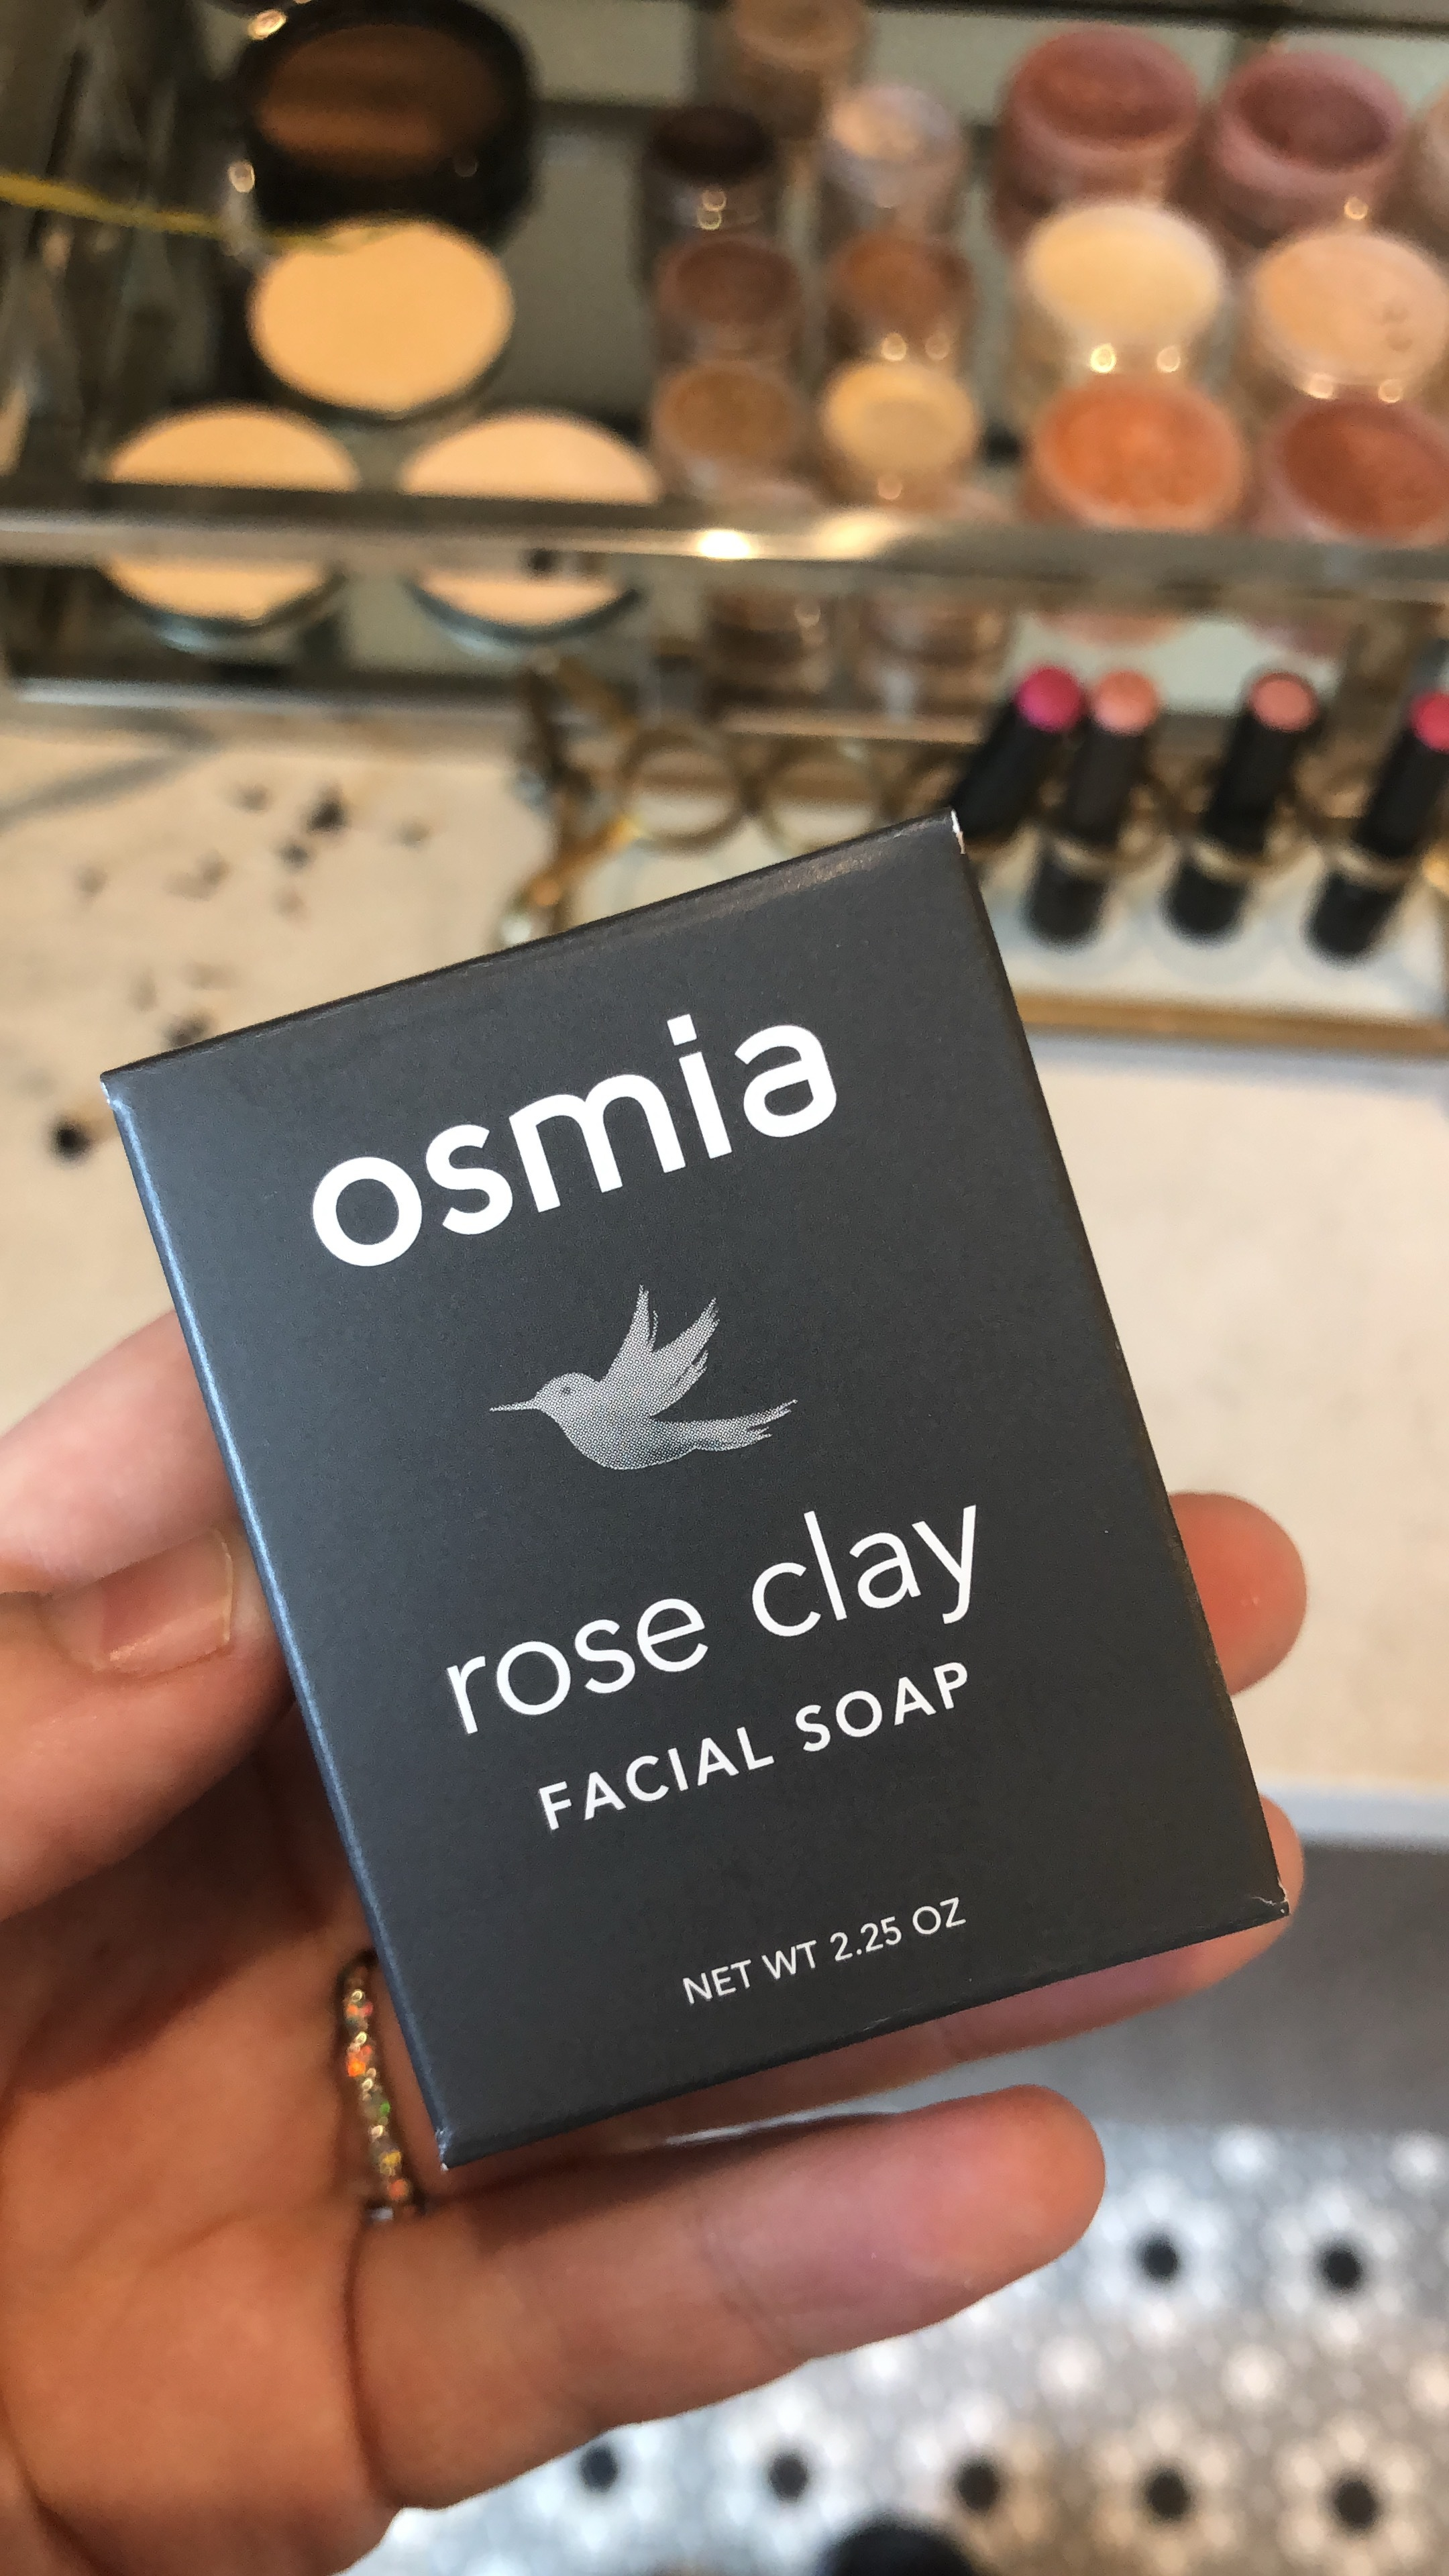 thatveganwife-cruelty-free-beauty-products-osmia-organics-rose-clay-facial-soap.JPG